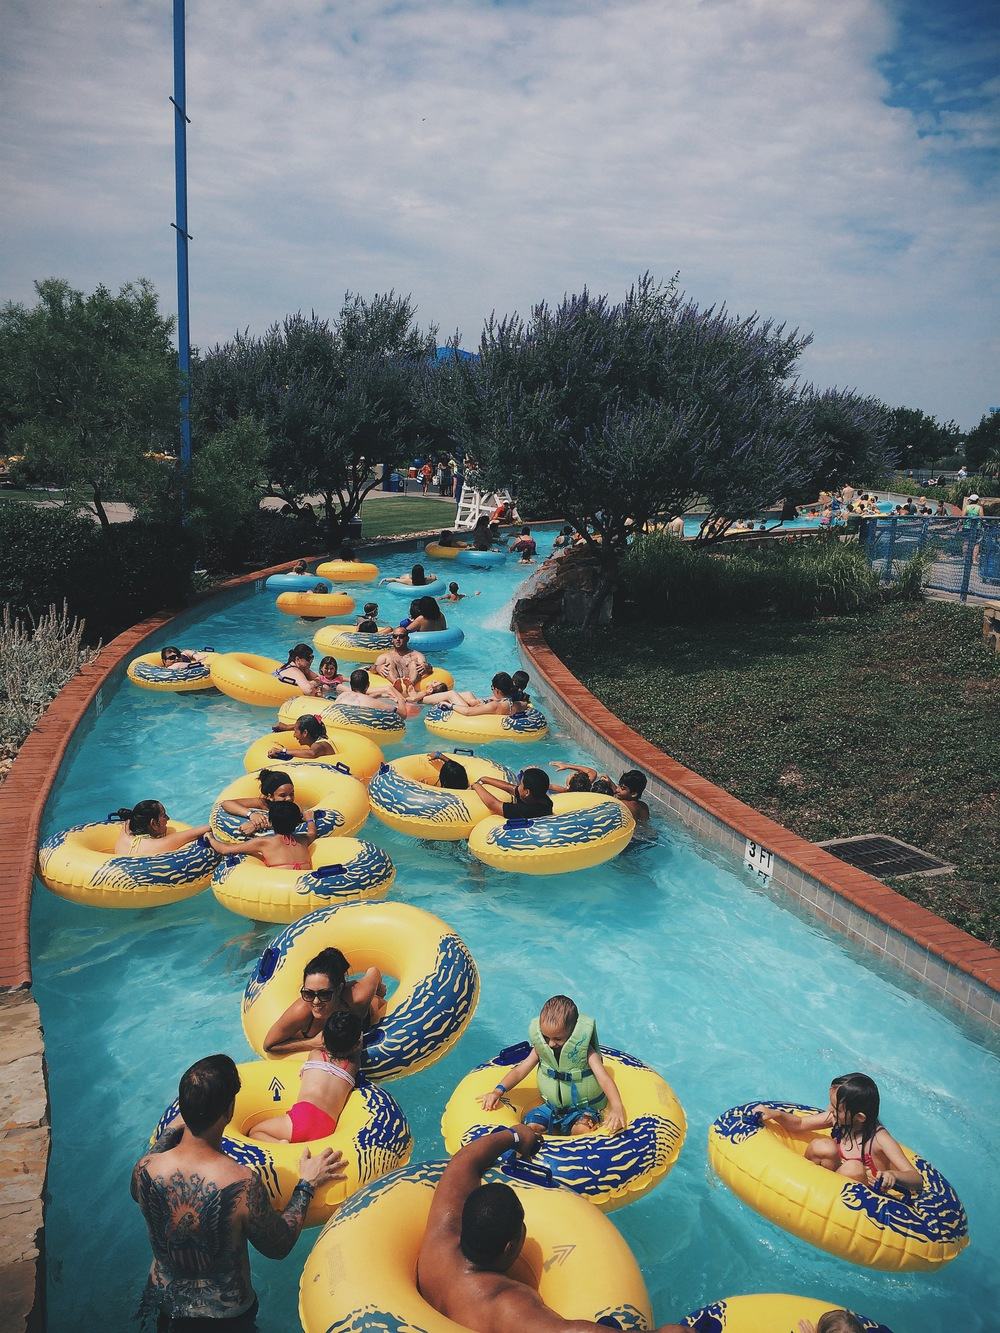 A local radio station sponsored a free day at Denton's Waterworks park if you texted them and showed up between 10am and noon. While we heard some compare the level of crowdedness to that of communist China, you can't really beat a free entry to the waterpark on a sunny day.